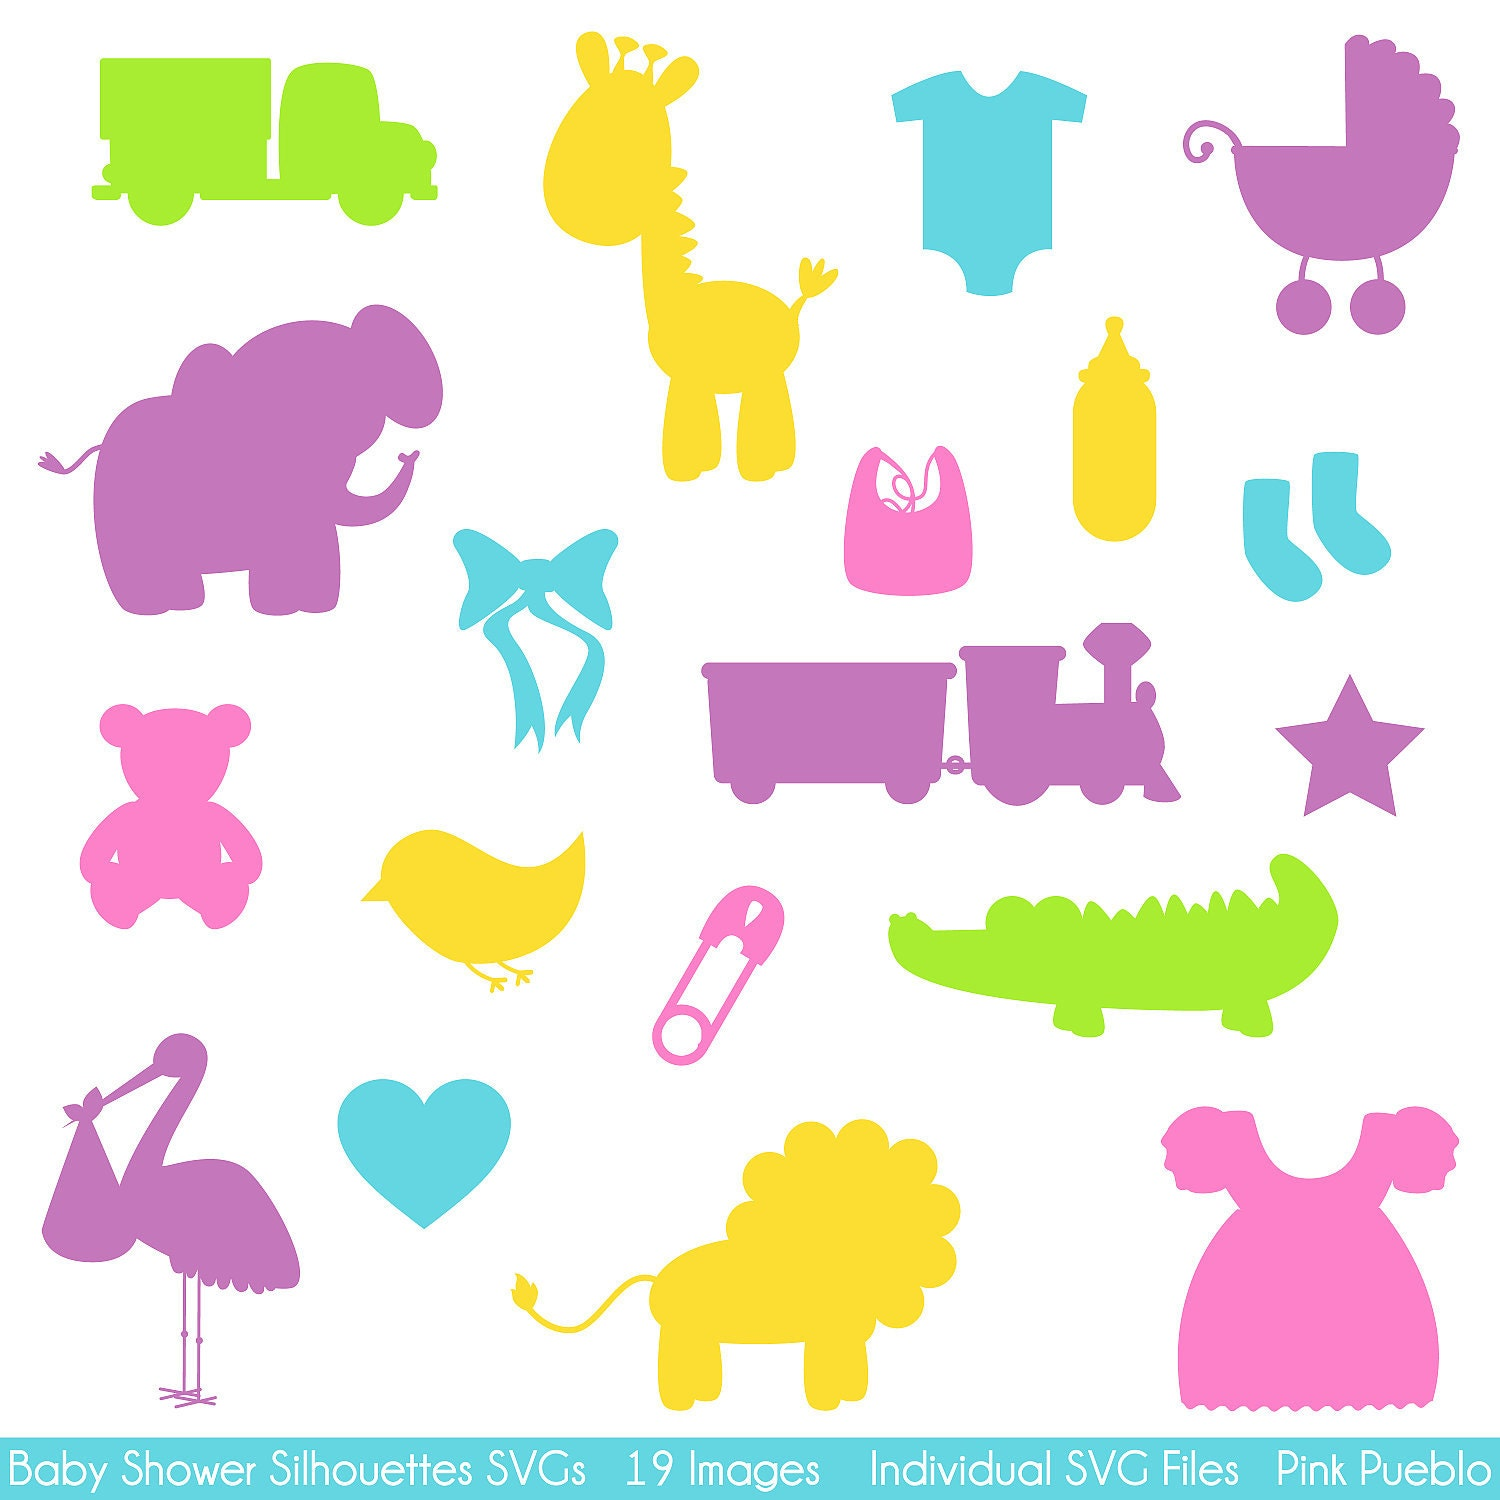 Baby shower silhouettes svgs baby shower cutting templates for Baby shower decoration templates